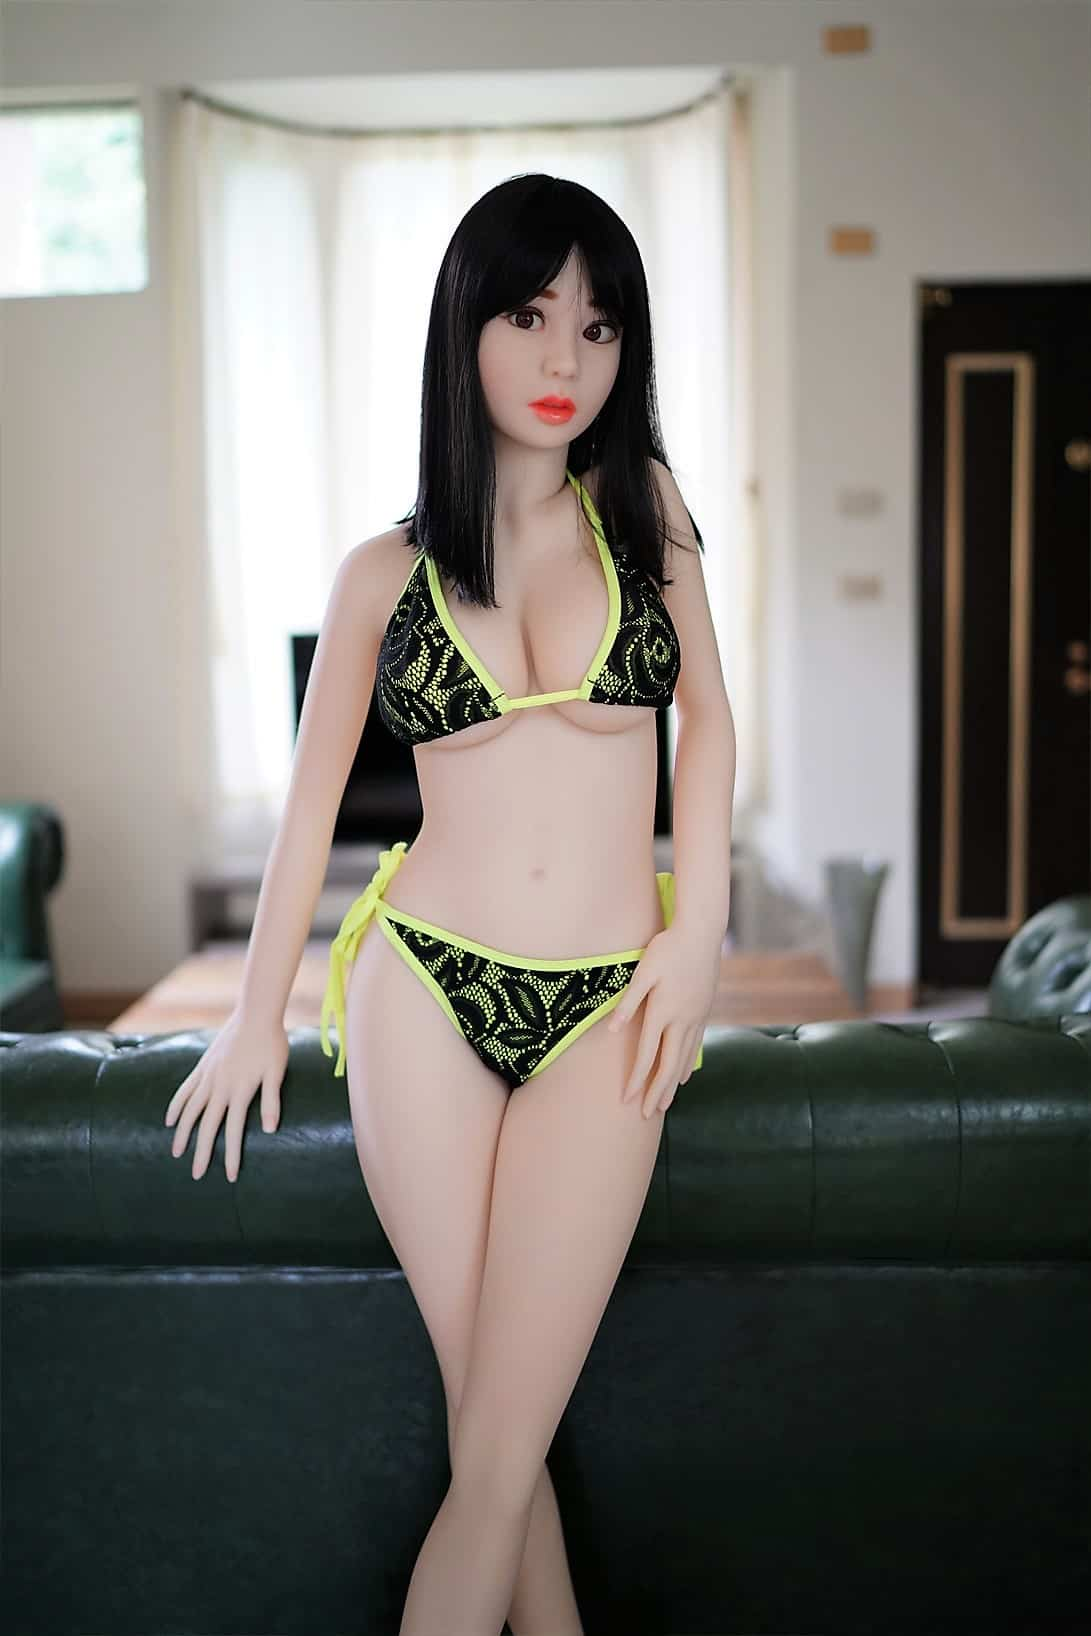 Sex-dolls-from-Dirty-Knights-Sex-Dolls-AI-Doll-Posing-in-Green-bathing-suit-and-nude-1 (3)